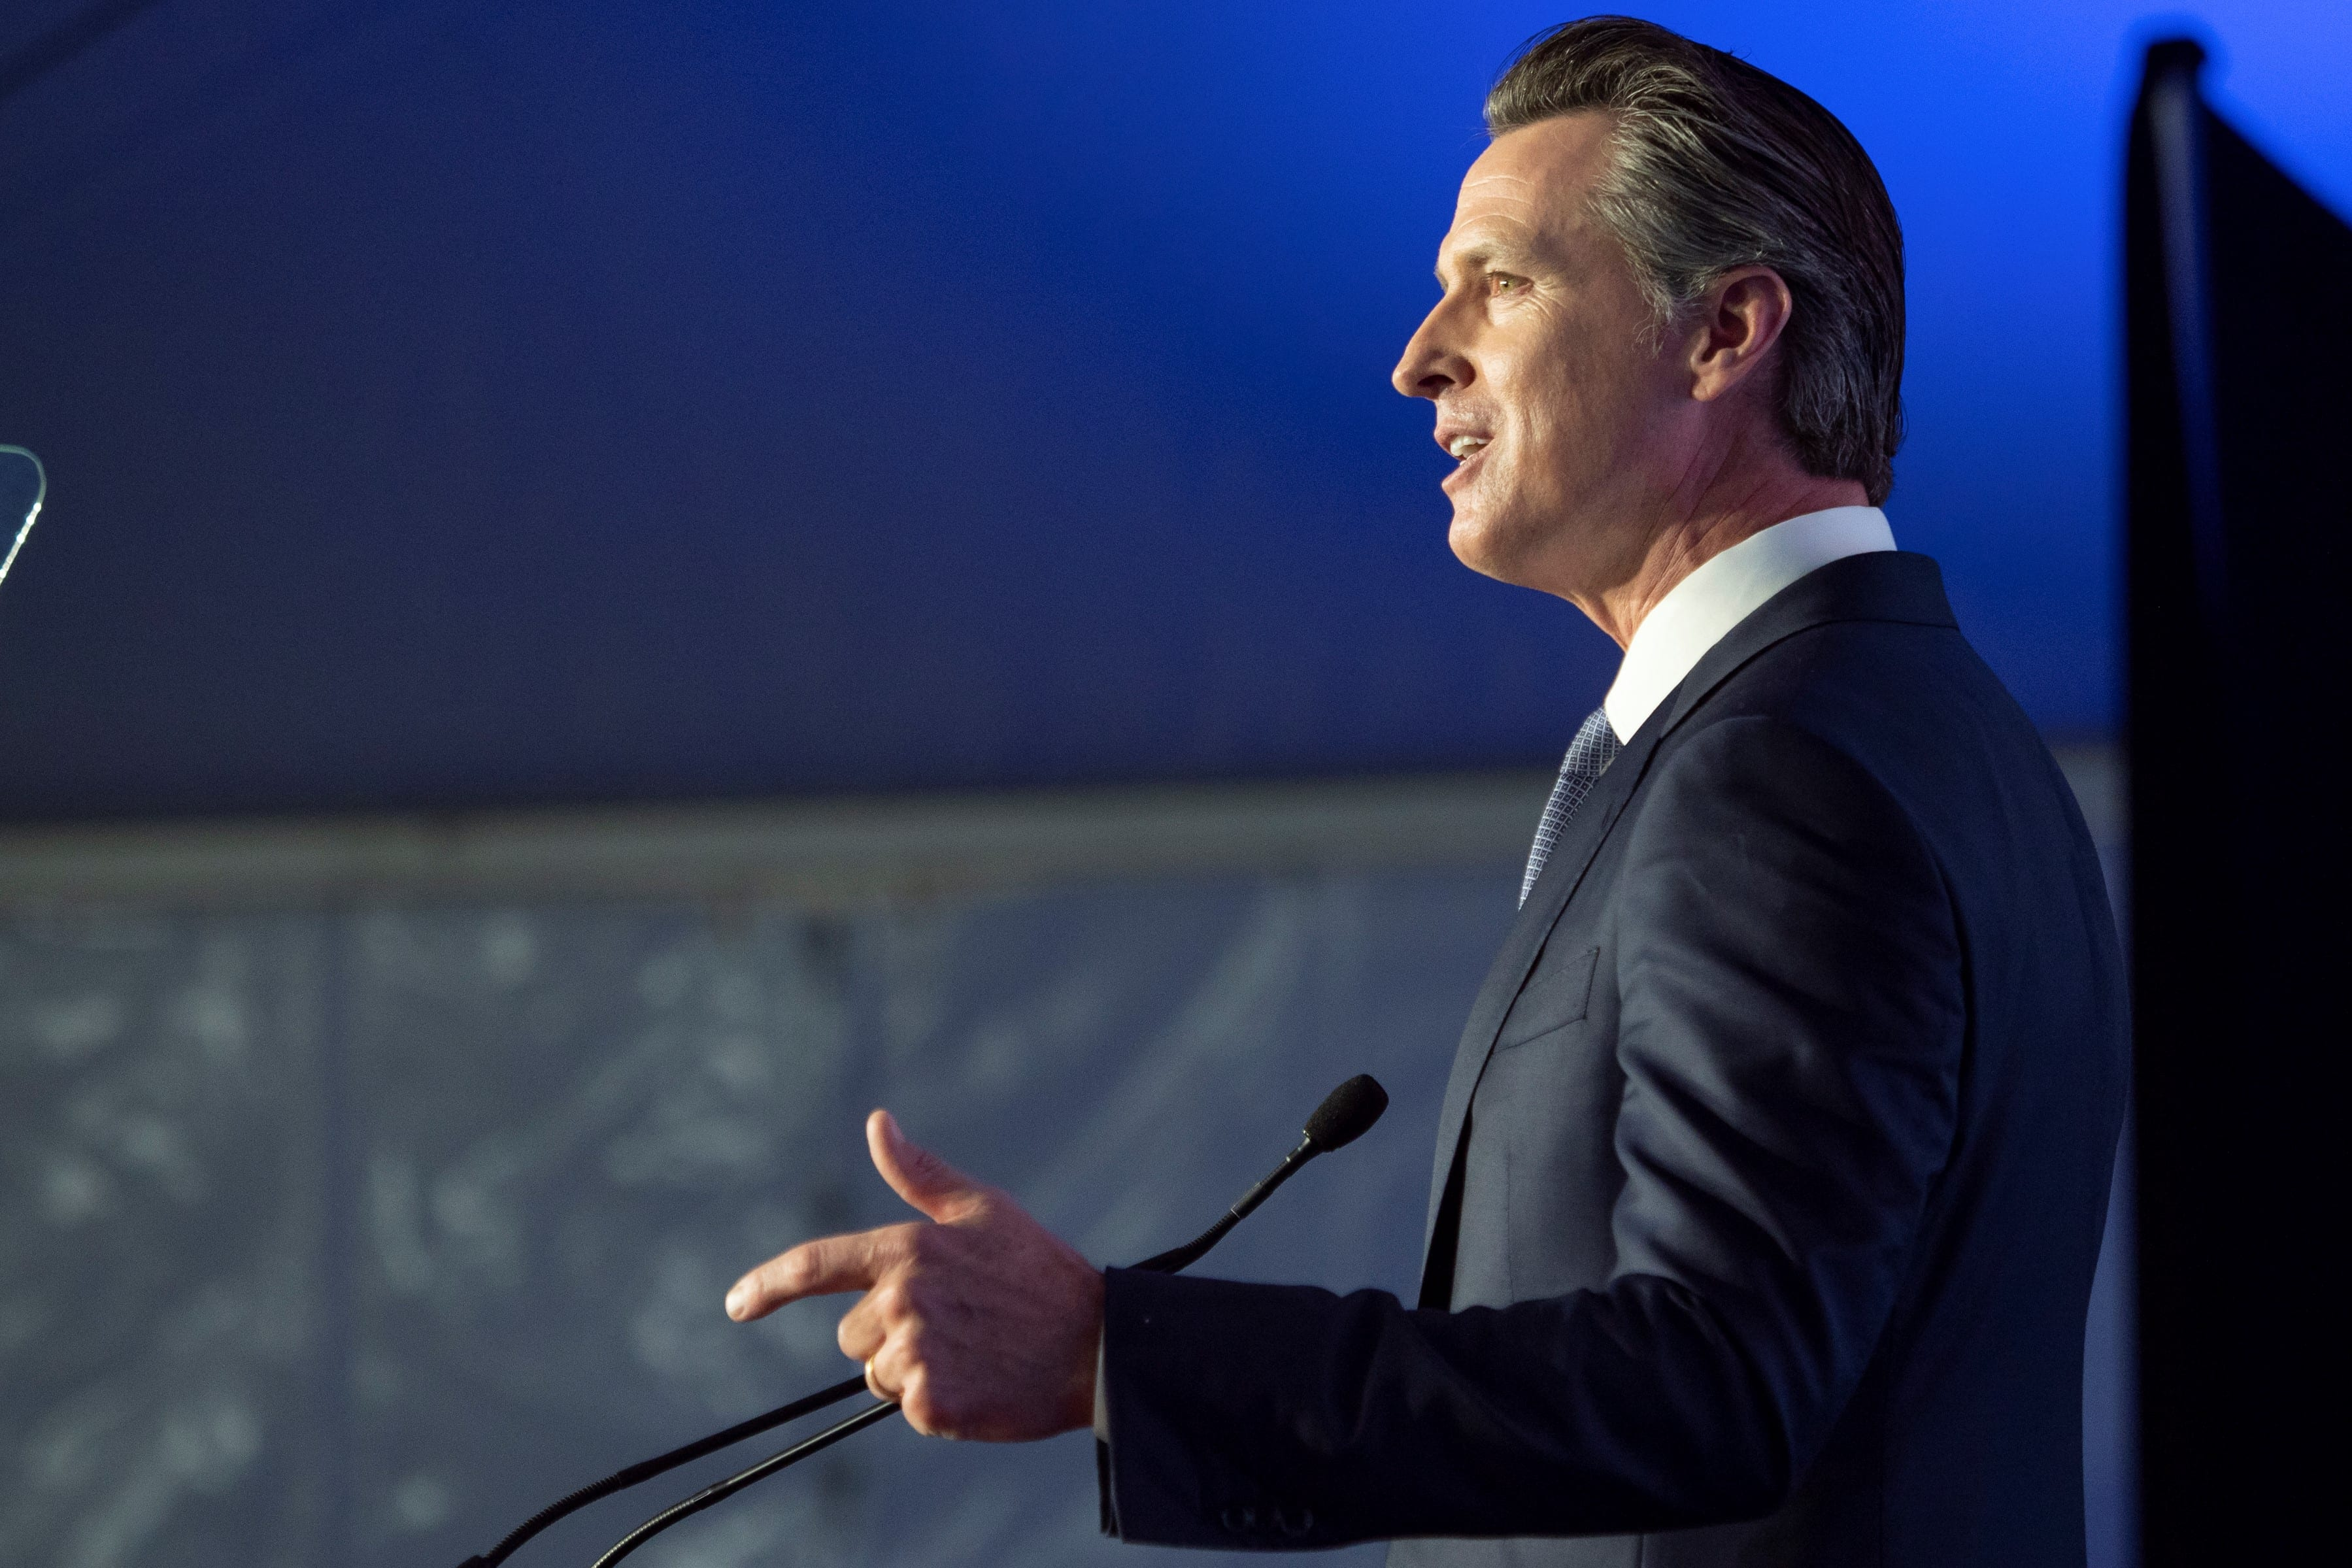 California Governor Gavin Newsom. Foto: State of California, Governor's Office